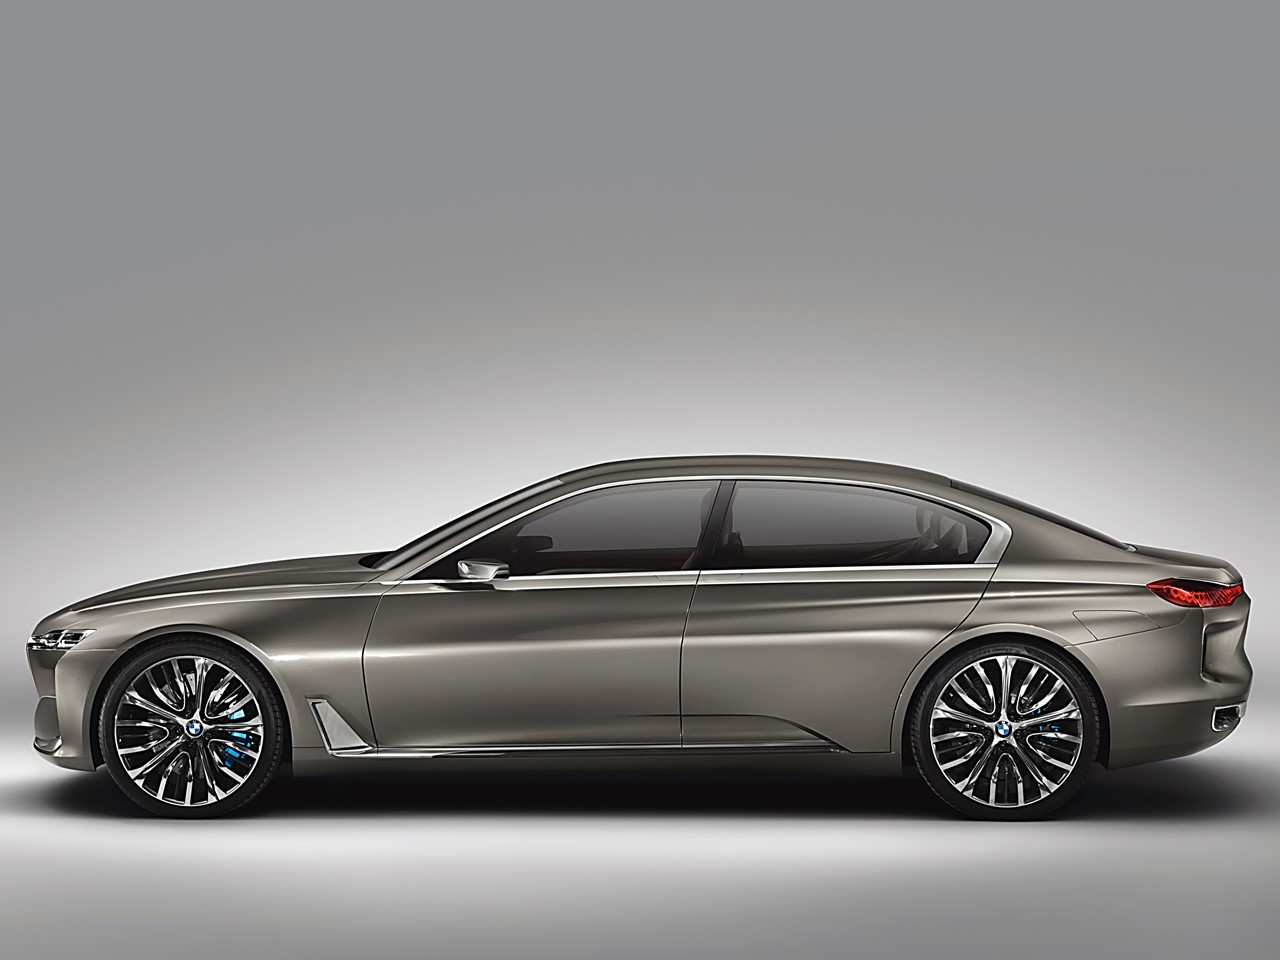 2016 Bmw 7 Series Command Performance Notoriousluxury